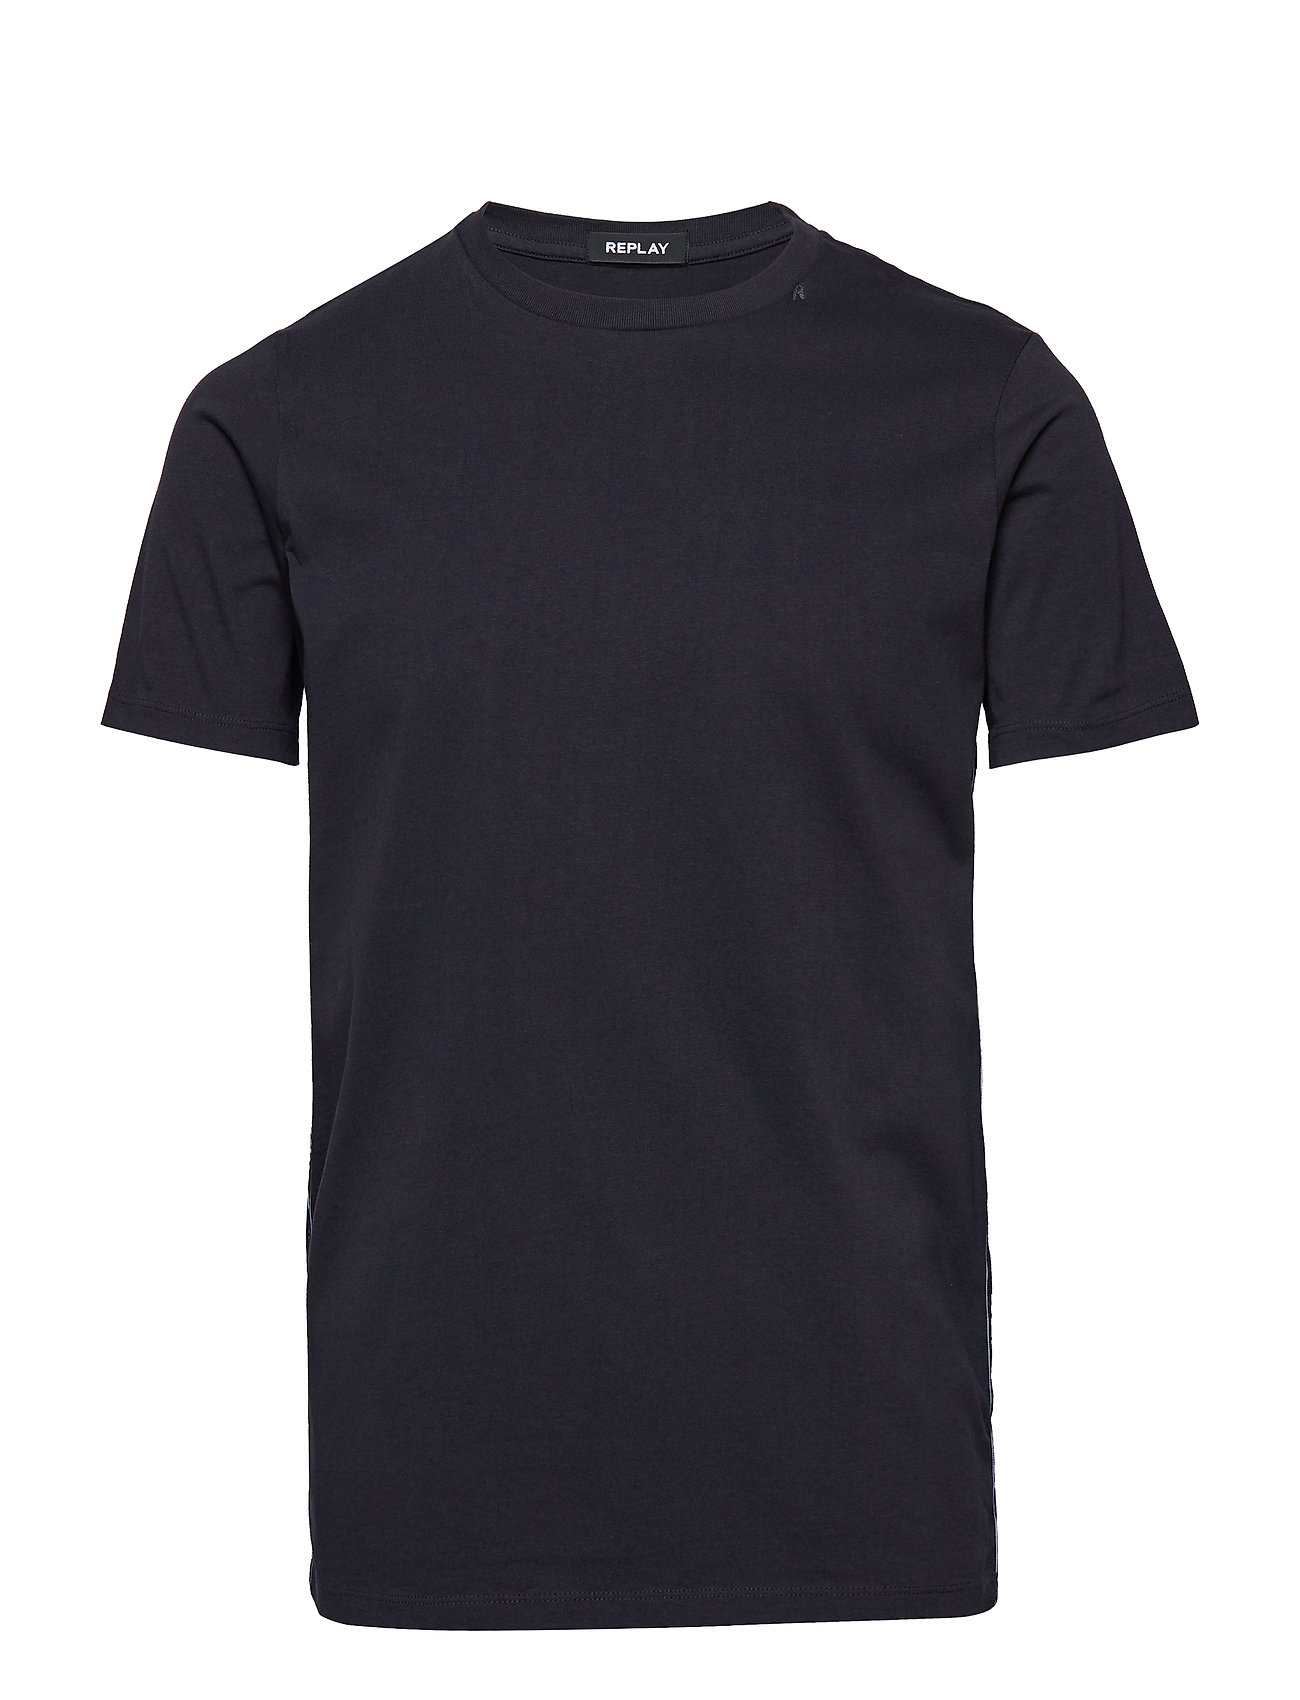 Replay PIECE DYED COMPACT JERSEY - BLUE GREY